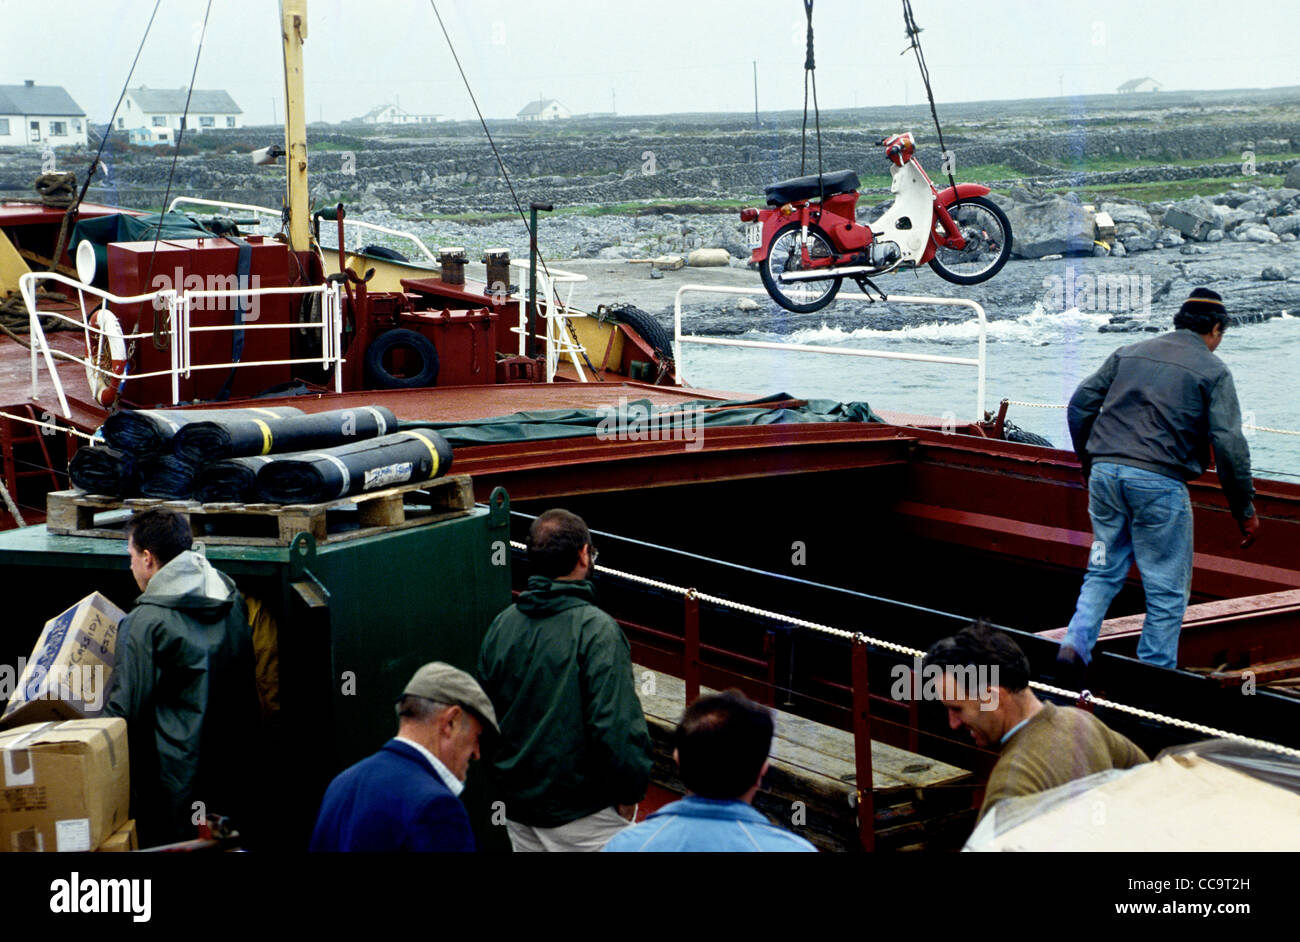 A motor cycle is craned ashore on the Aran Islands Co Galway Ireland - Stock Image